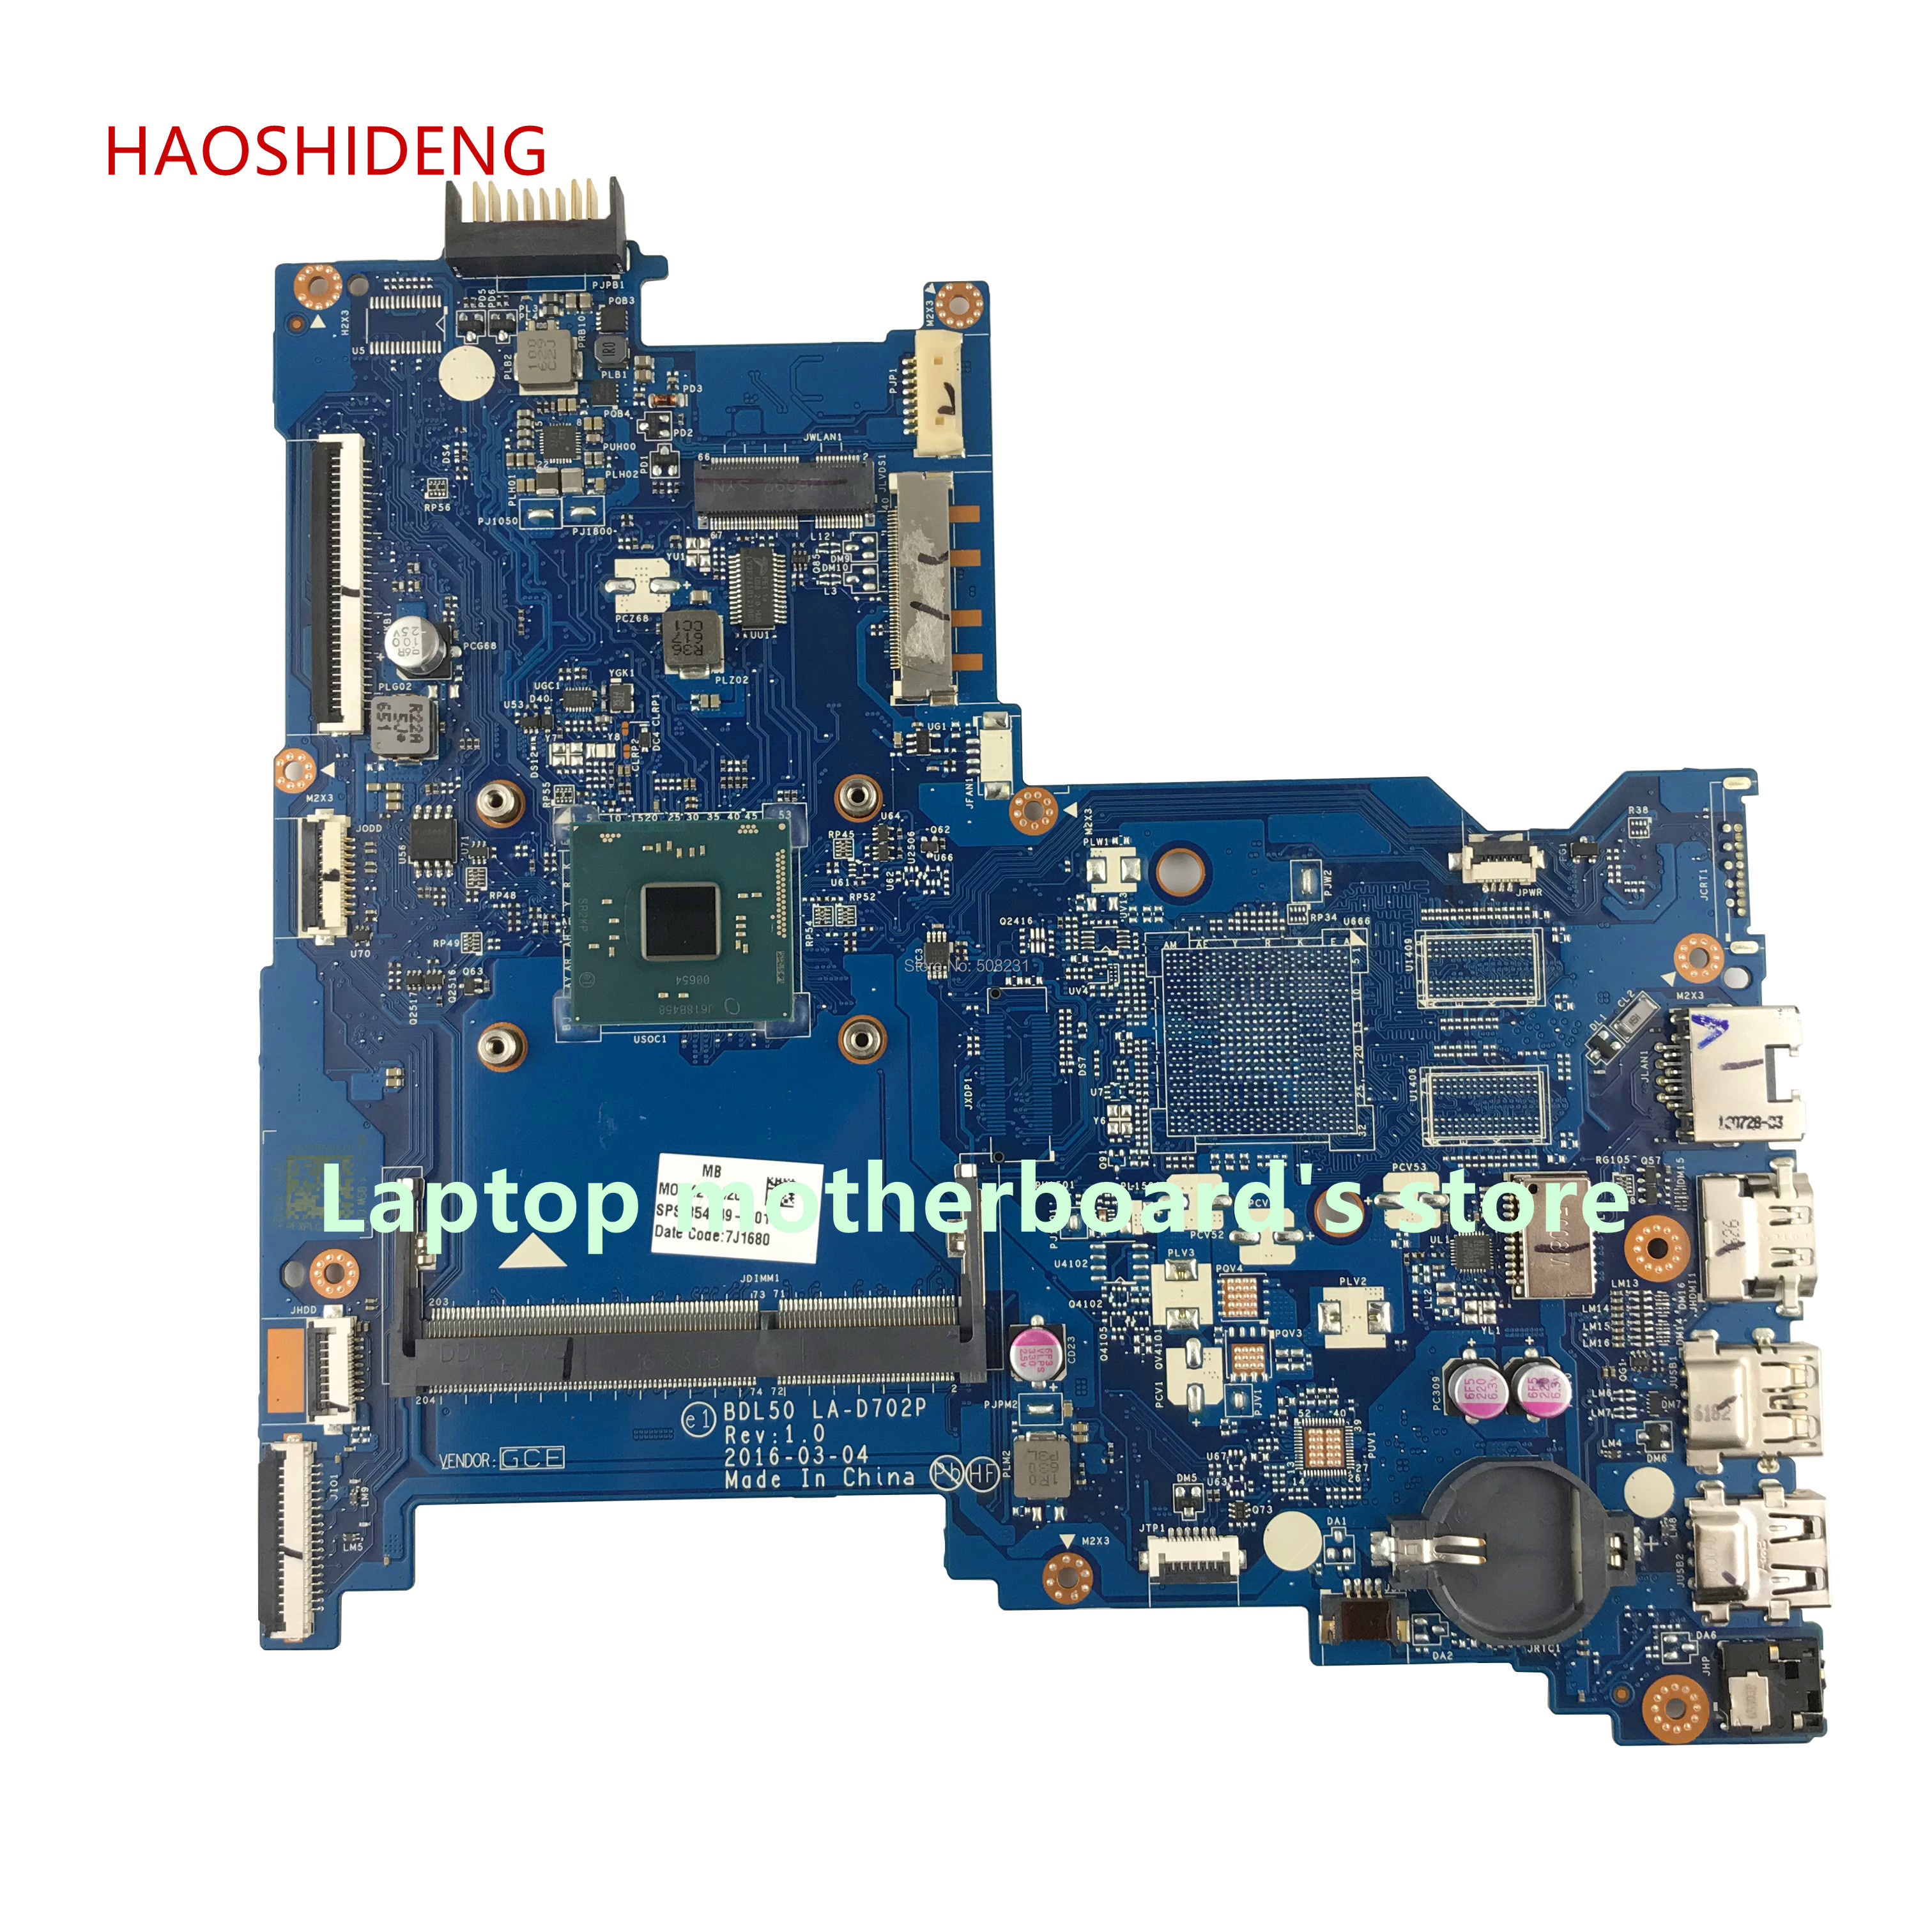 HAOSHIDENG 854949-601 BDL50 LA-D702P mainboard for HP NOTEBOOK 15-AC 15-AY 15-15-AY083NR laptop motherboard with N3160 processor free shipping 854949 601 bdl50 la d702p for hp notebook 15 ay series motherboard with n3160 cpu all functions 100